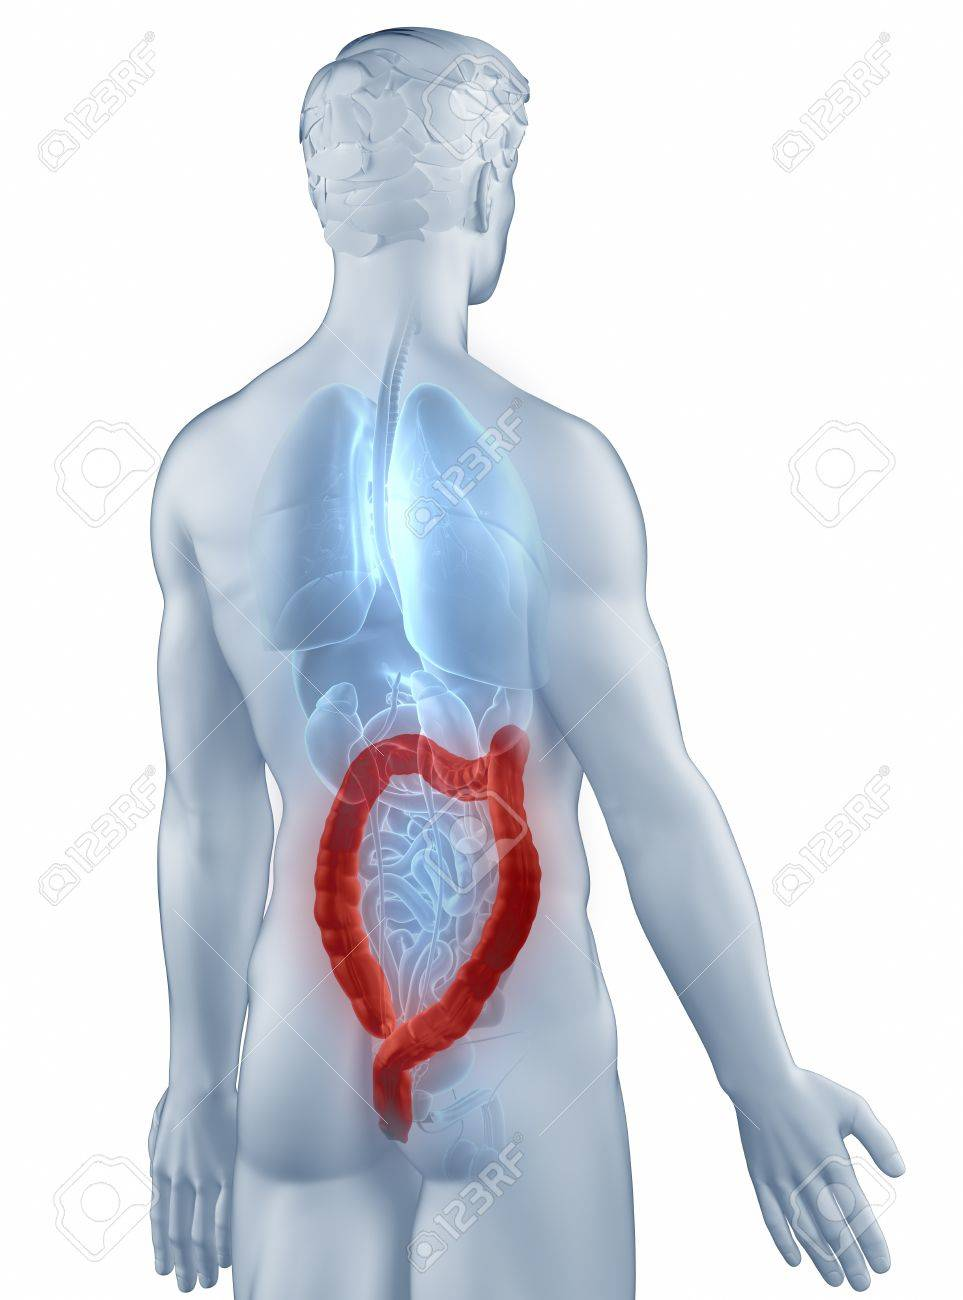 Colon position anatomy man isolated posterior view Stock Photo - 19707332